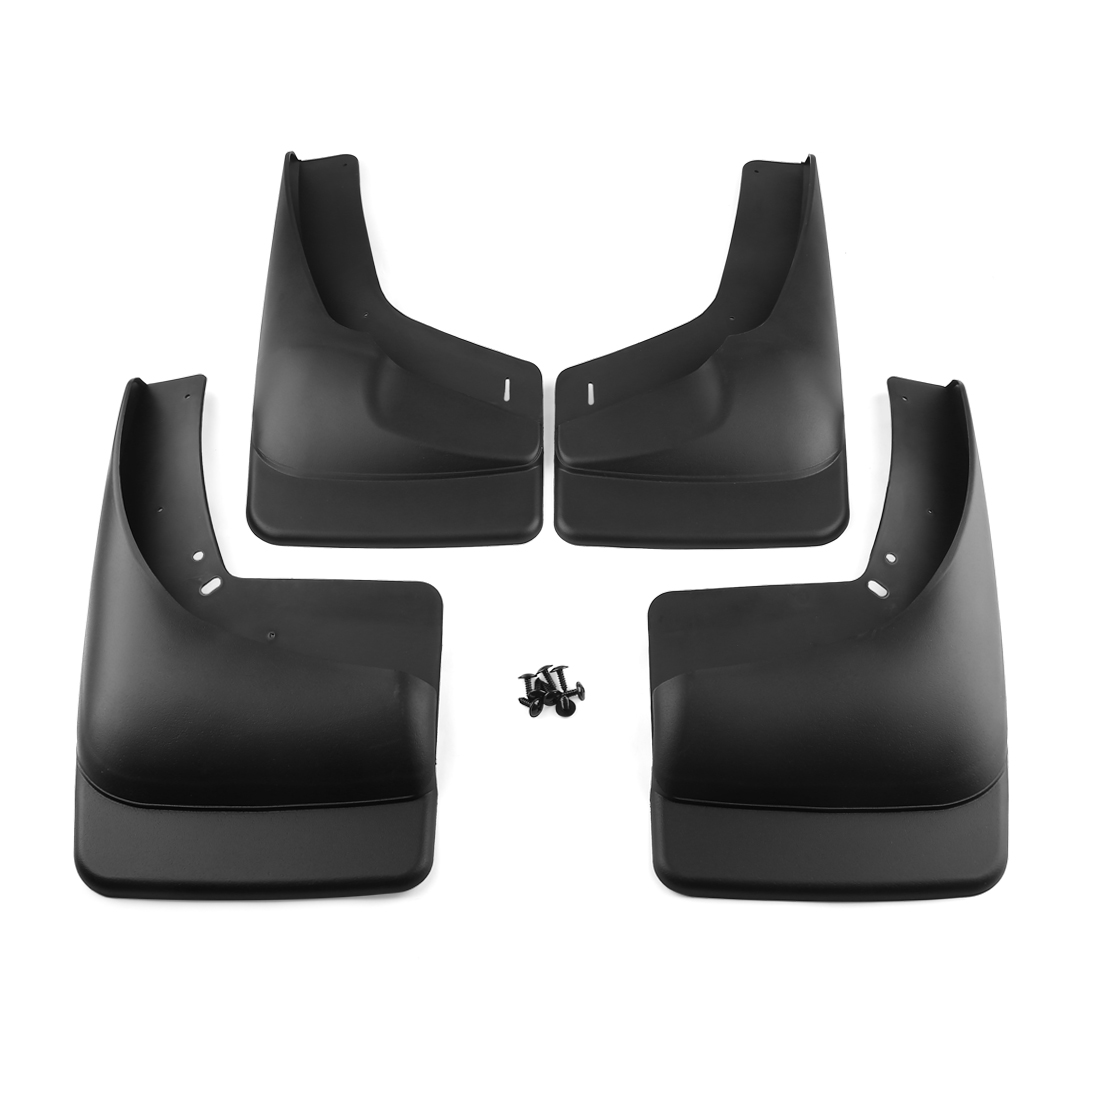 4pcs Mud Flaps Splash Guards w/ Fender for 1999-2007 Chevy Silverado